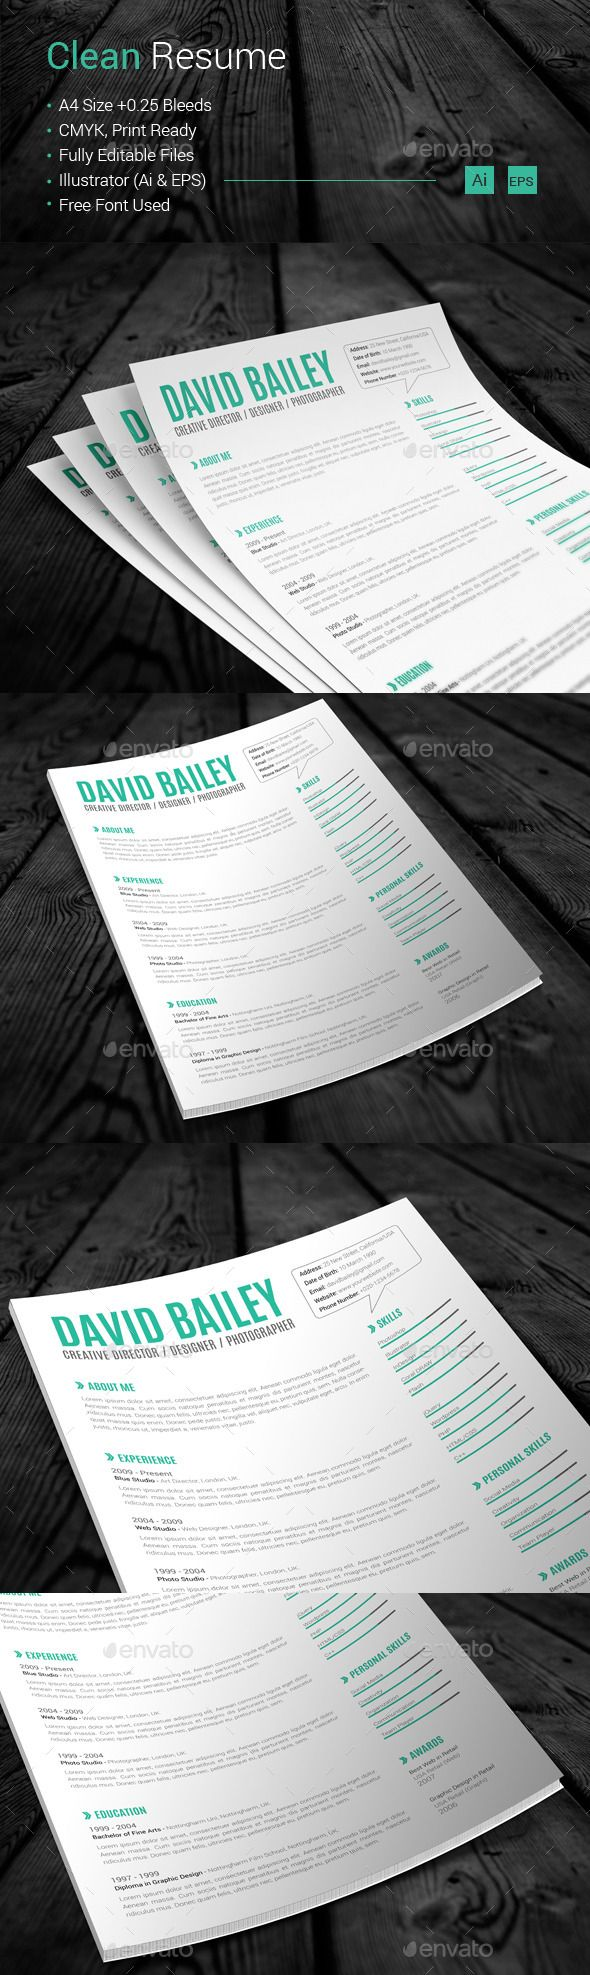 58 best curro images on Pinterest | Resume design, Resume ideas and ...